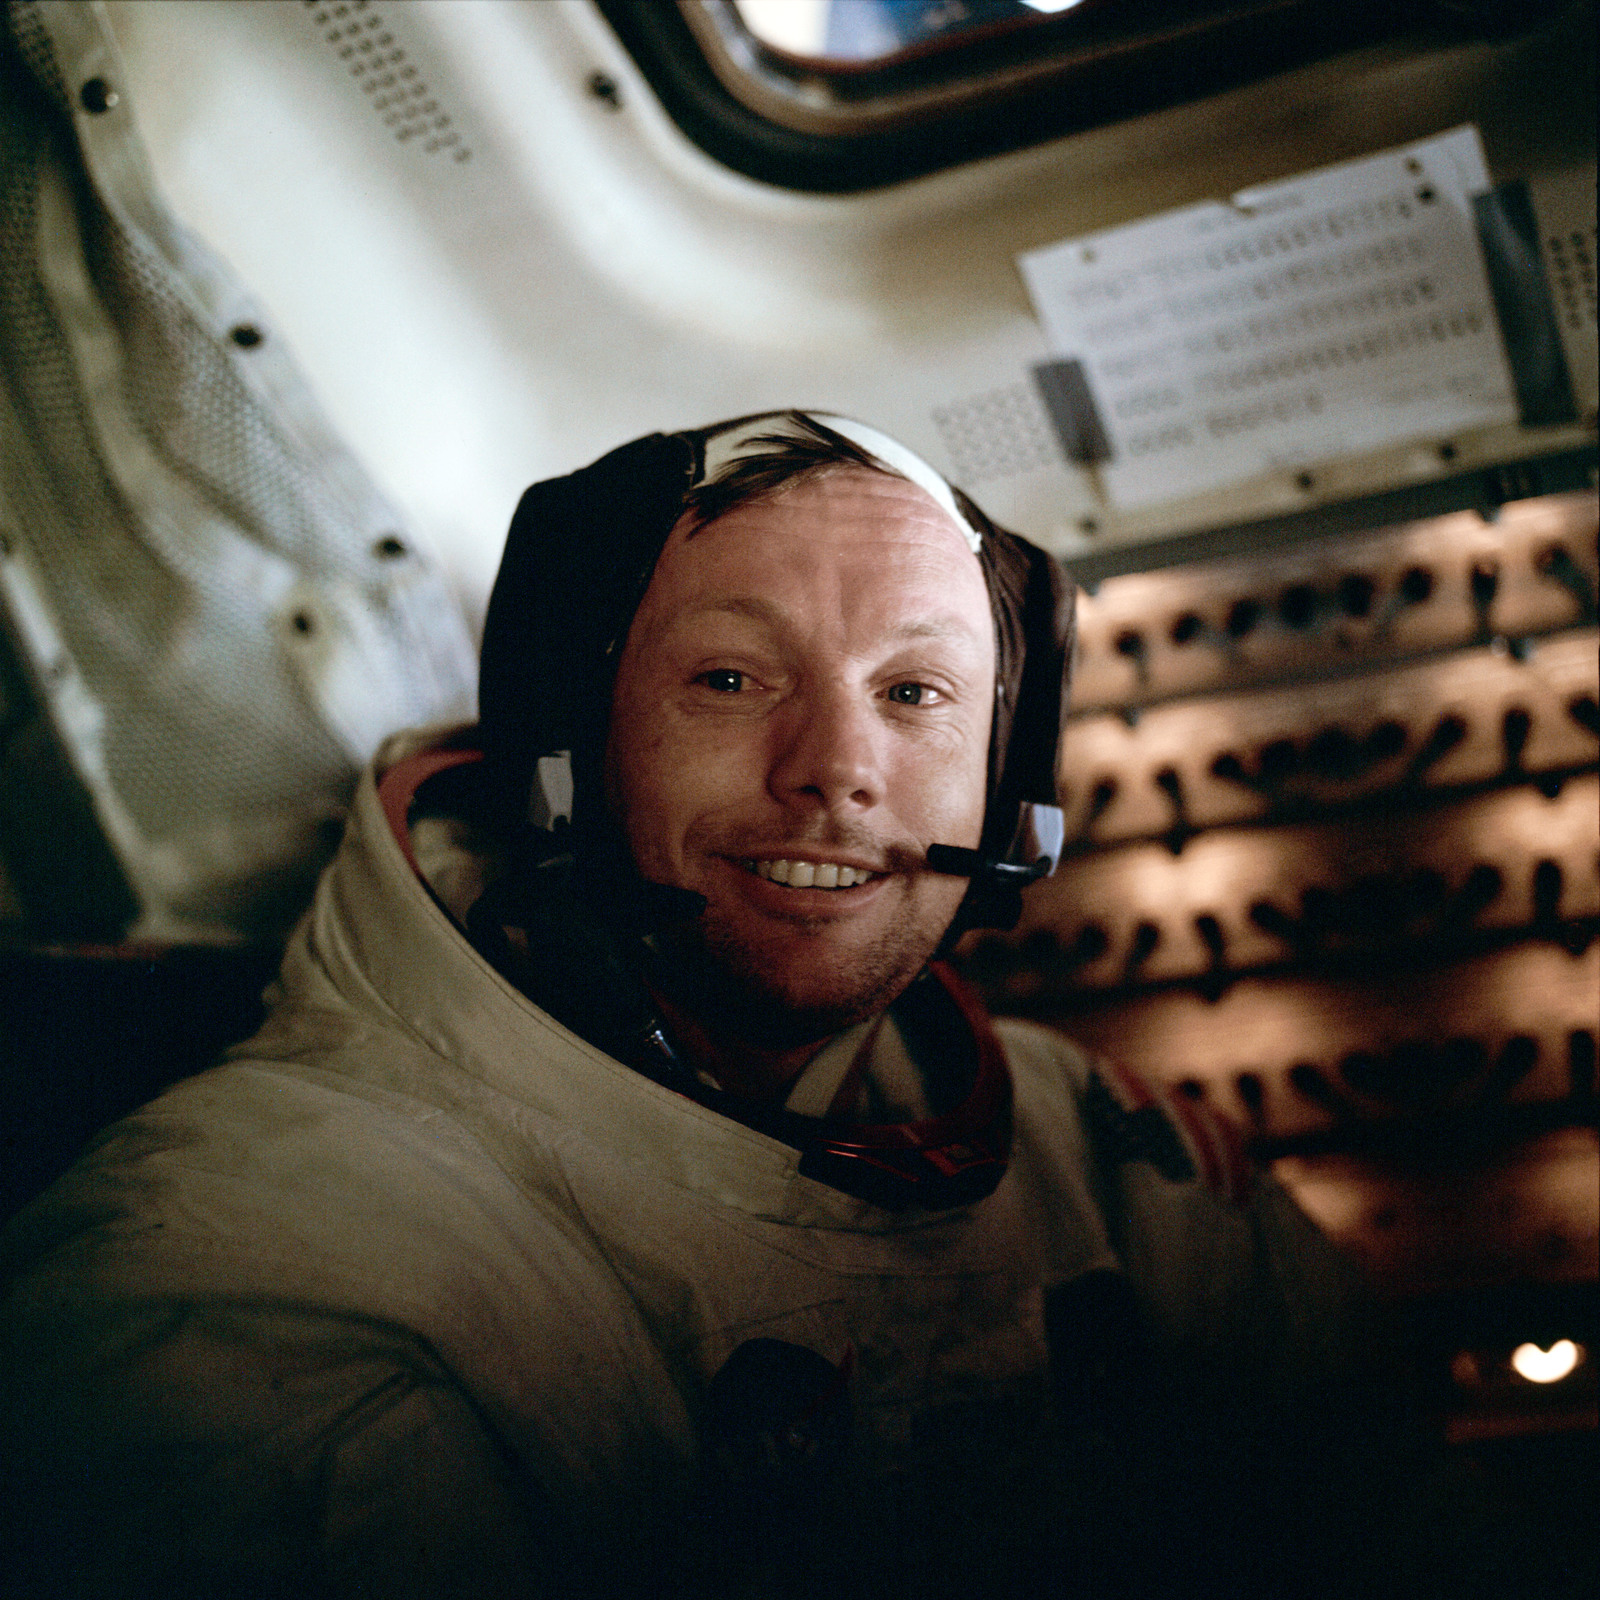 AS11-37-5528 - Apollo 11 - Apollo 11 Mission image - Neil A. Armstrong inside the Lunar Module after EVA